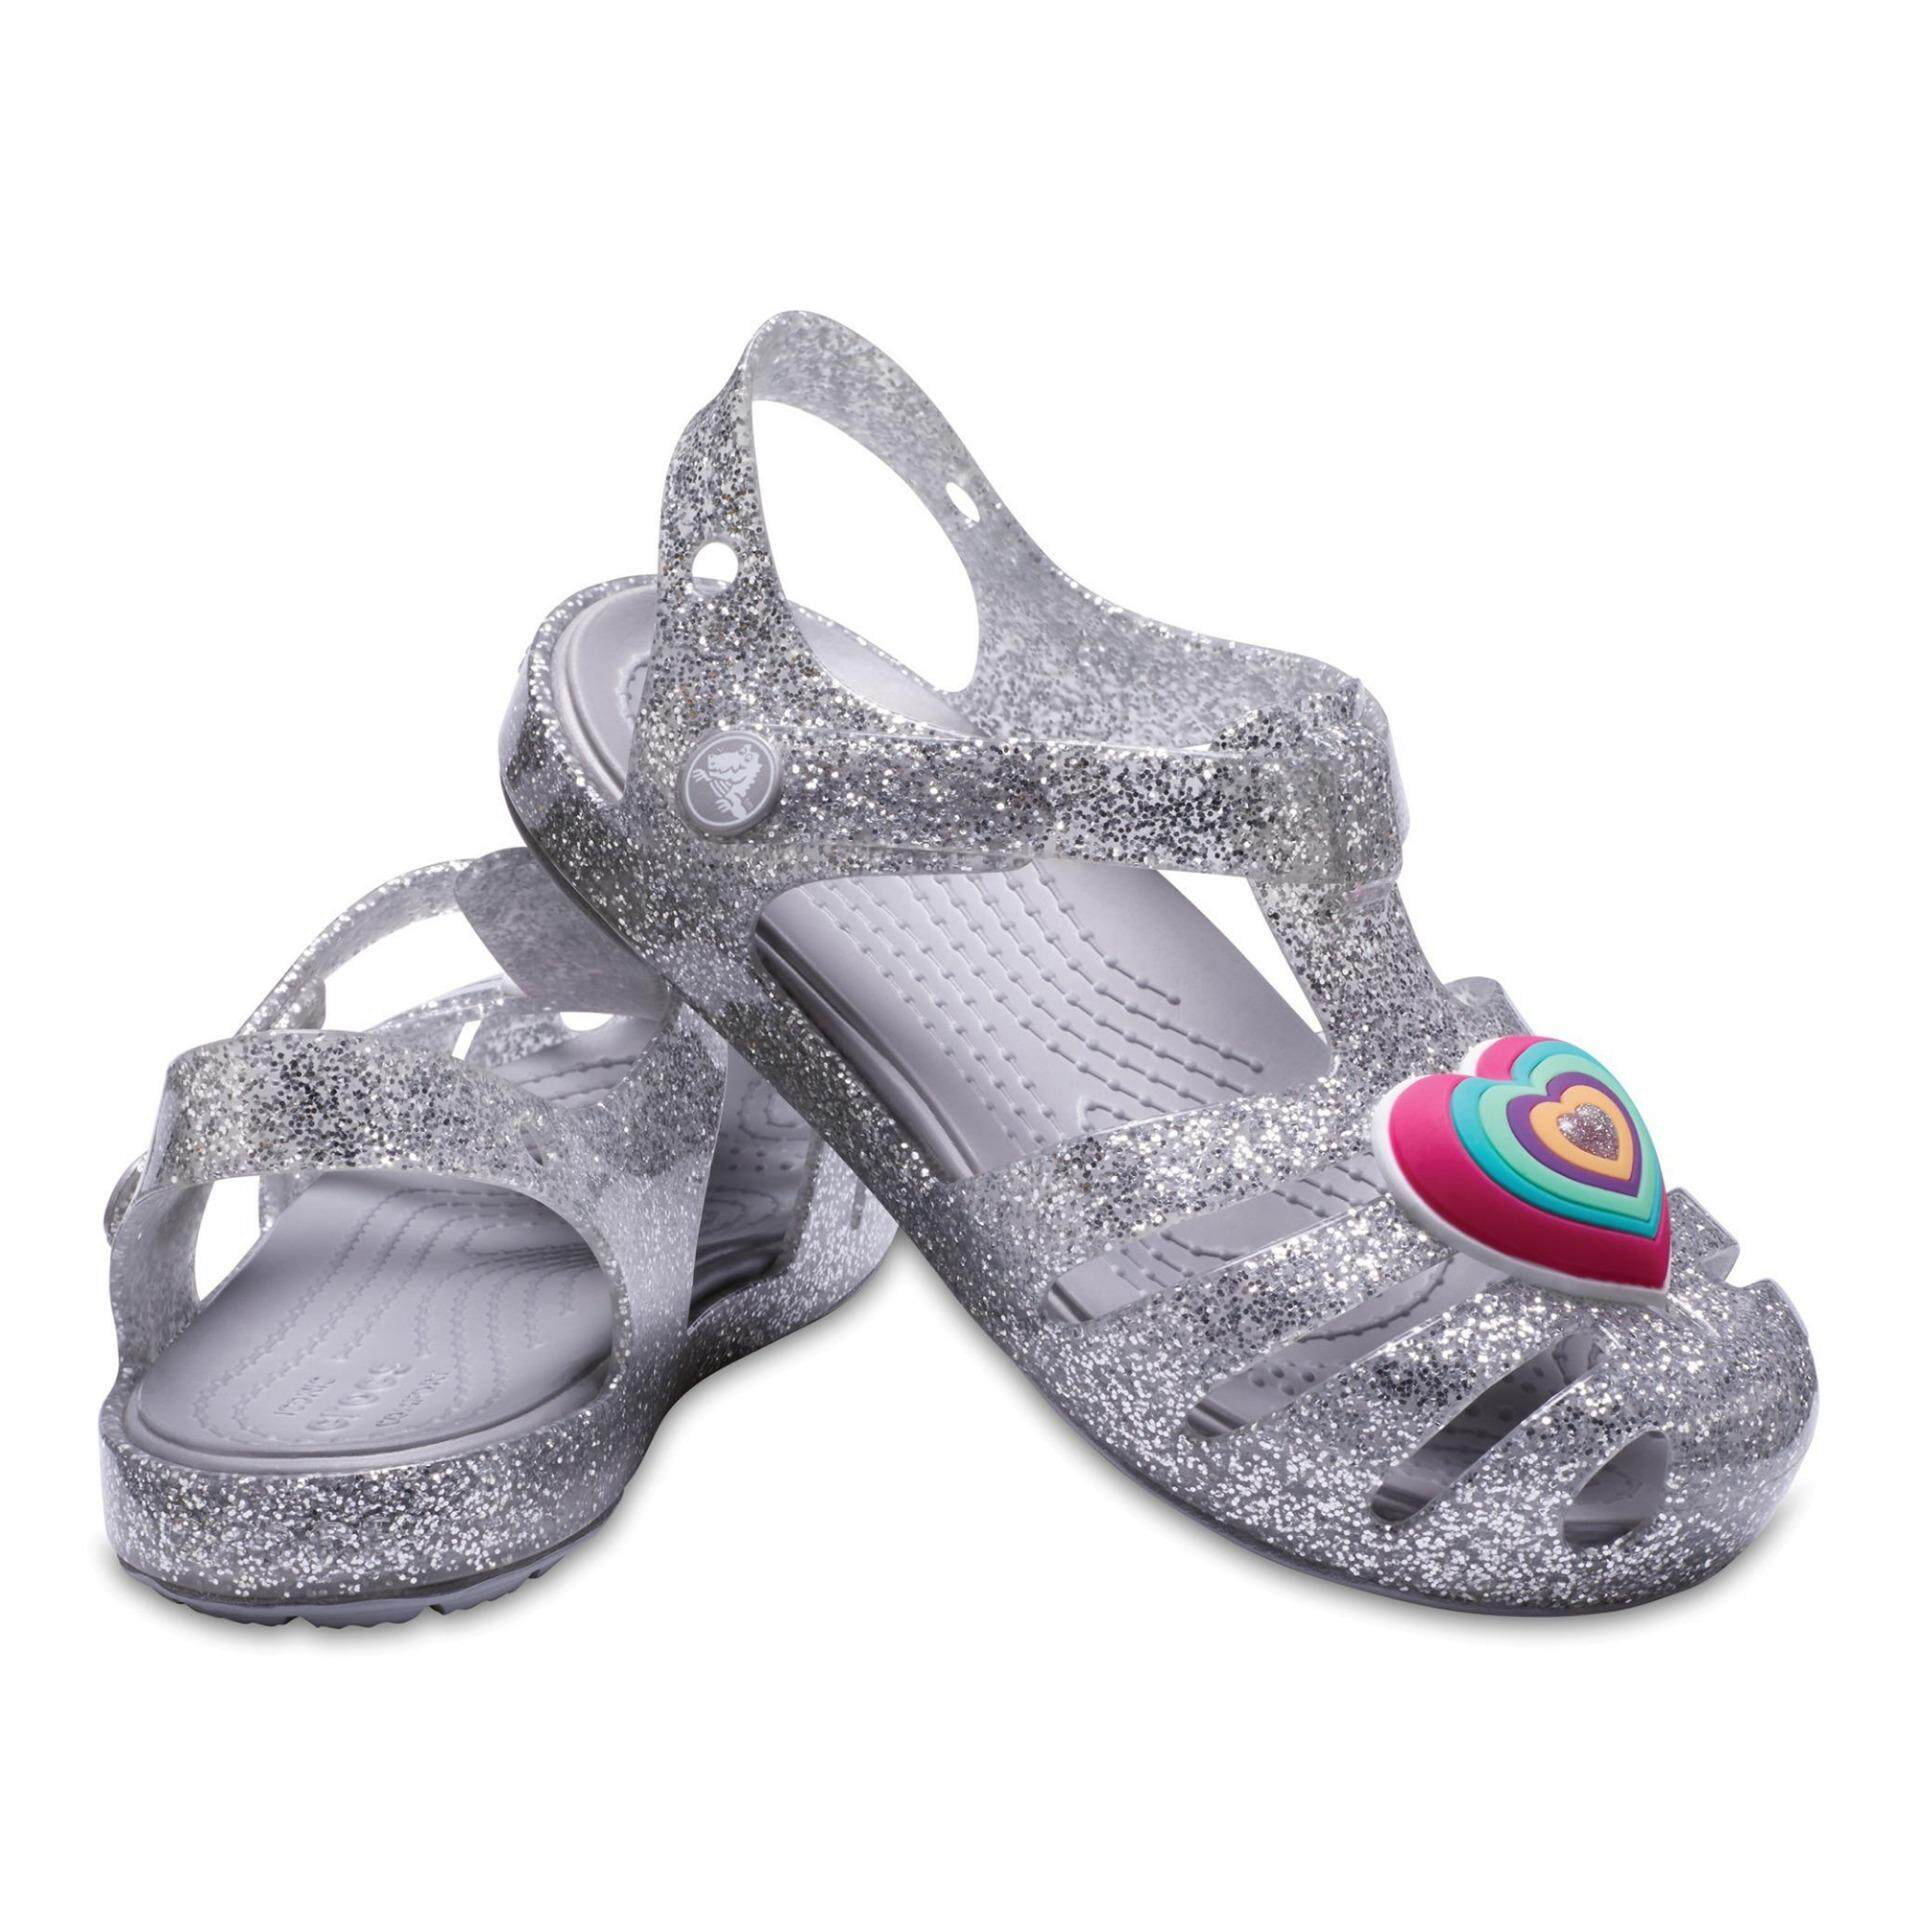 31347f2aed9 CROCS Products for the Best Prices in Malaysia